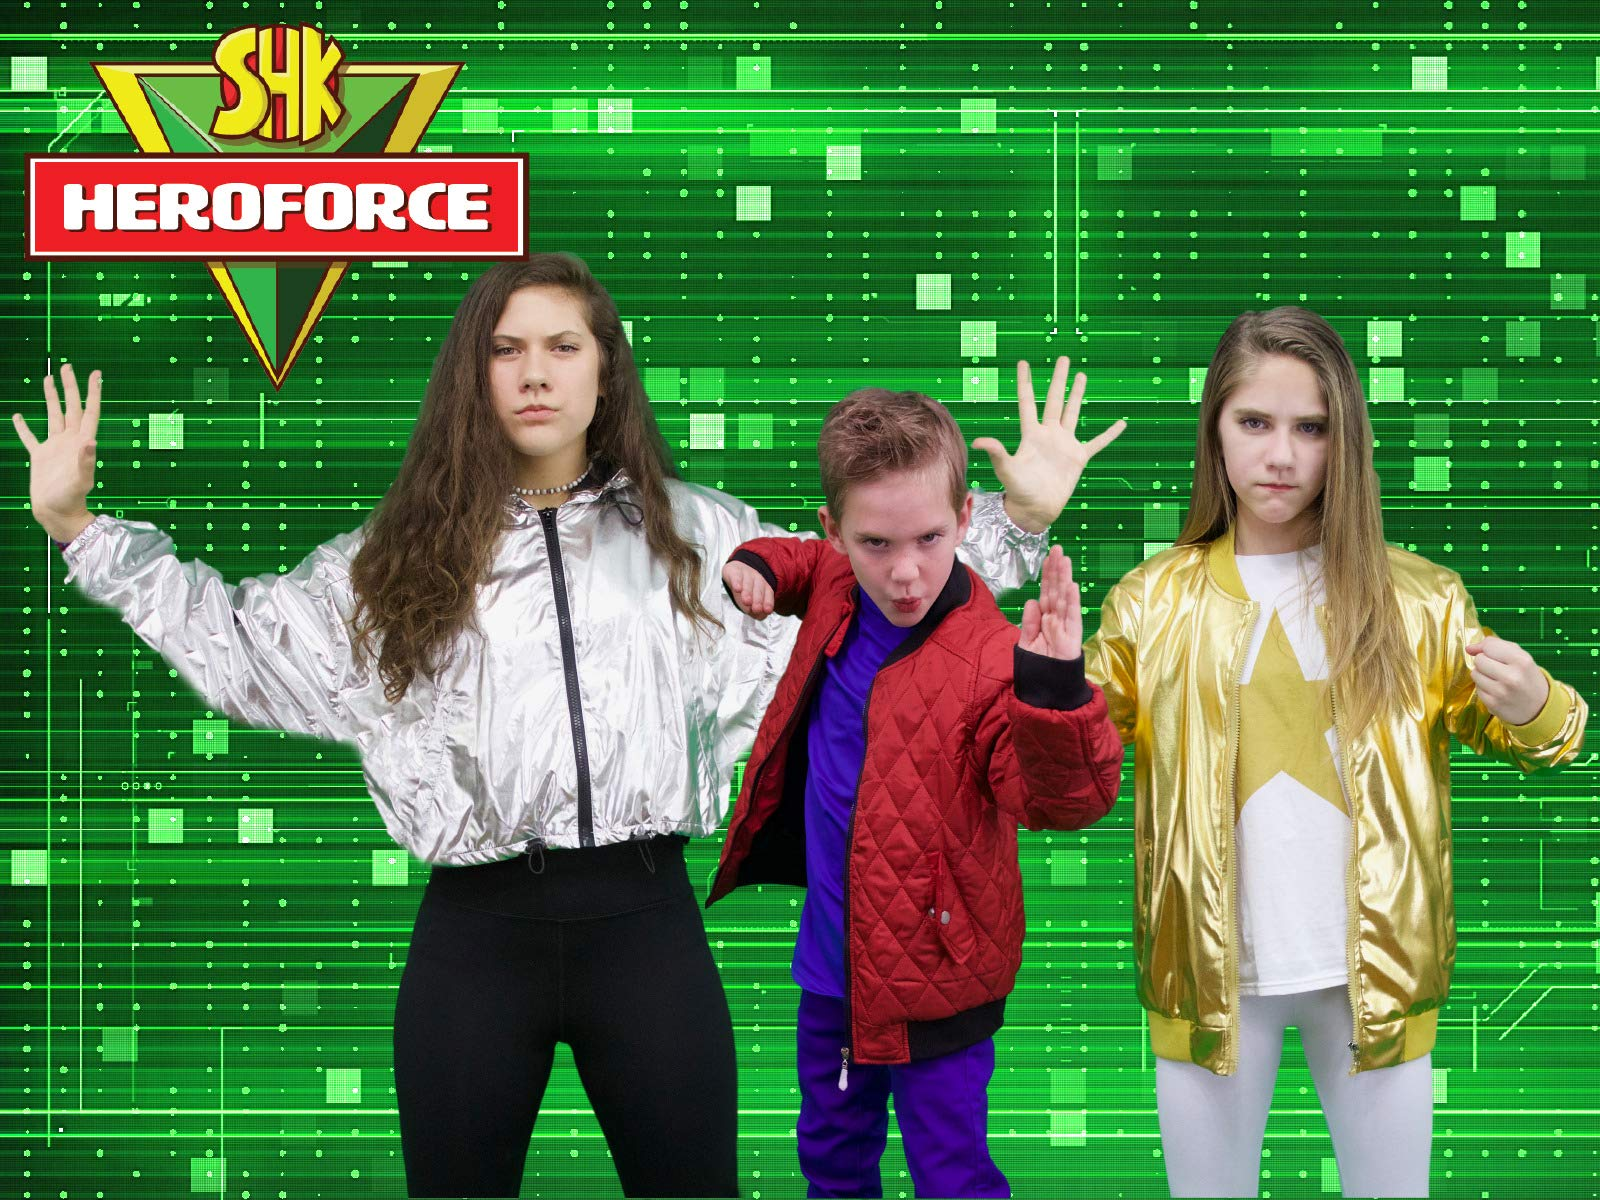 SHK HeroForce